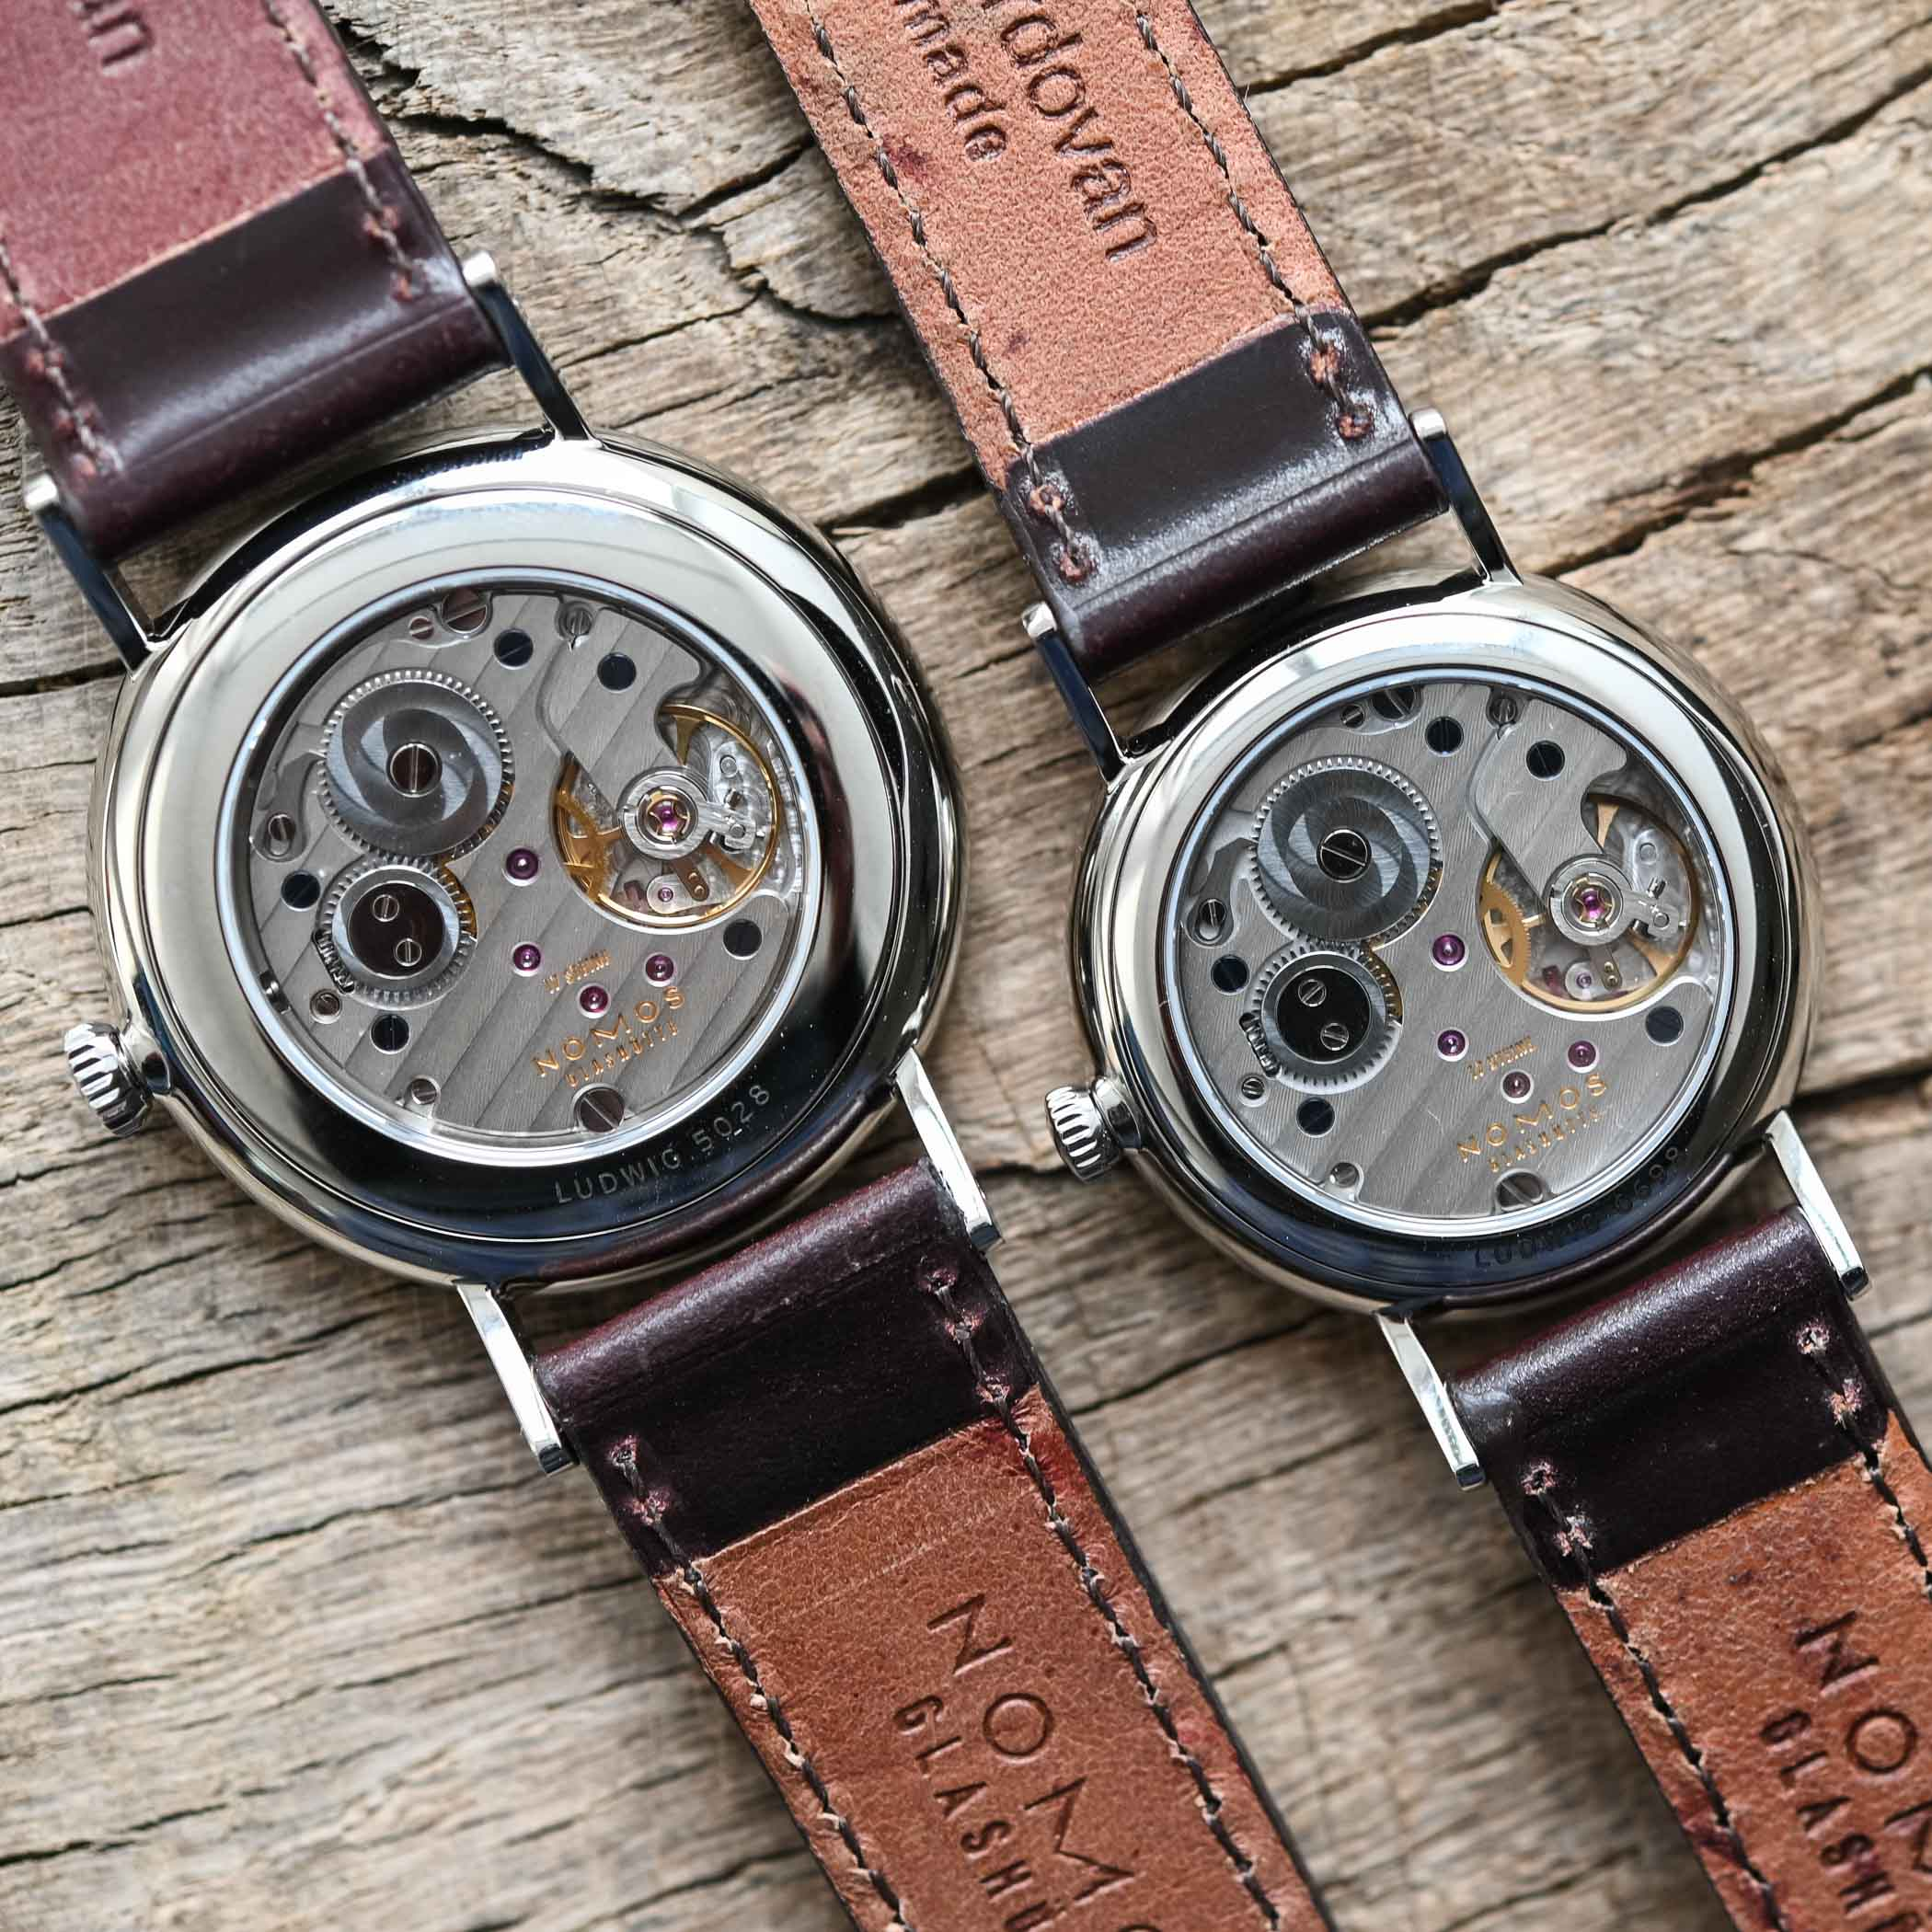 NOMOS Ludwig 38 and Ludwig 33 Duo Annual Holiday Watches - enamel dial 175th anniversary watchmaking glashutte - 6